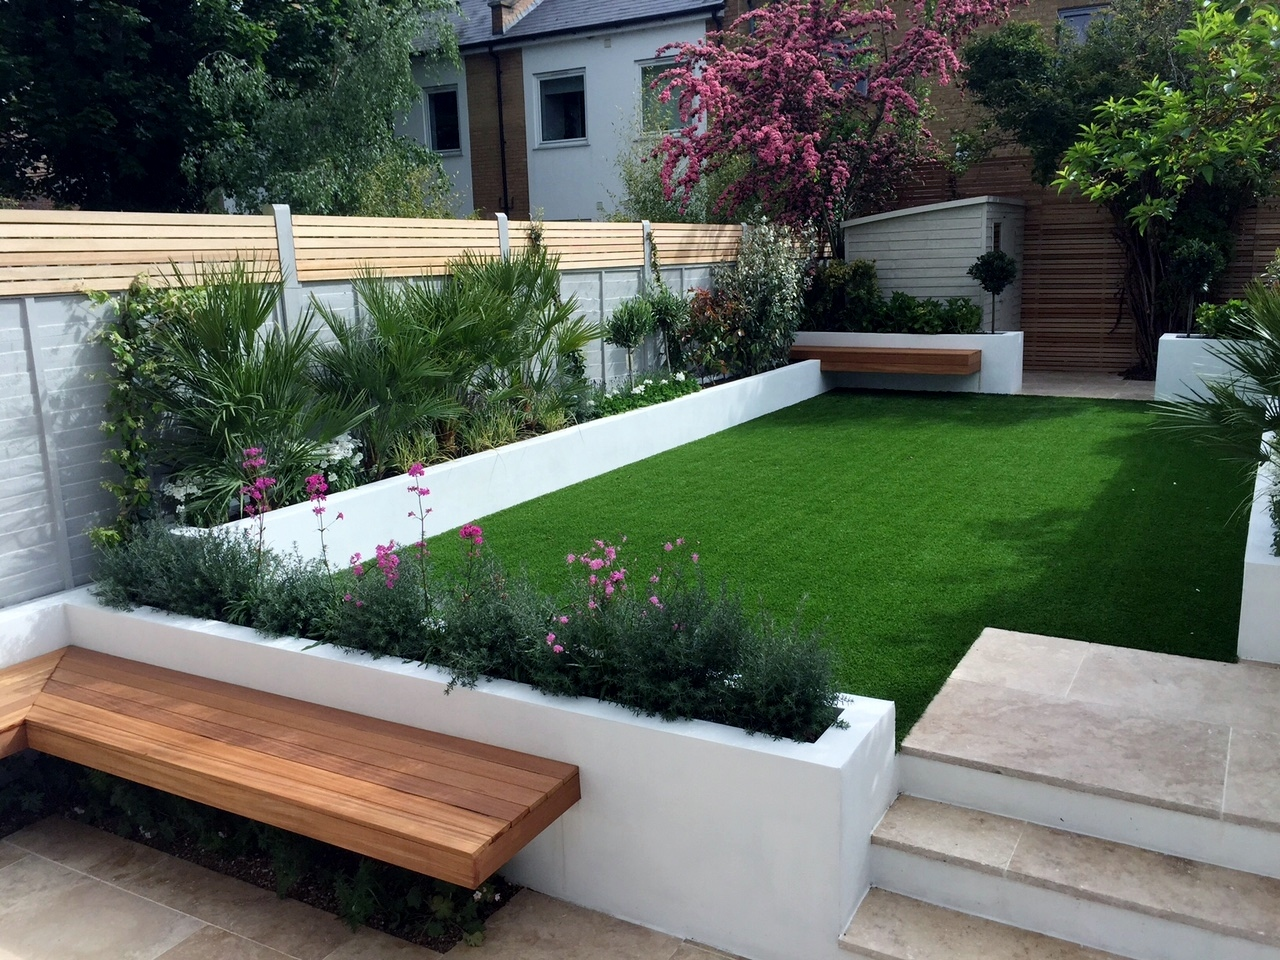 Modern garden design ideas fulham chelsea battersea for Best house garden design